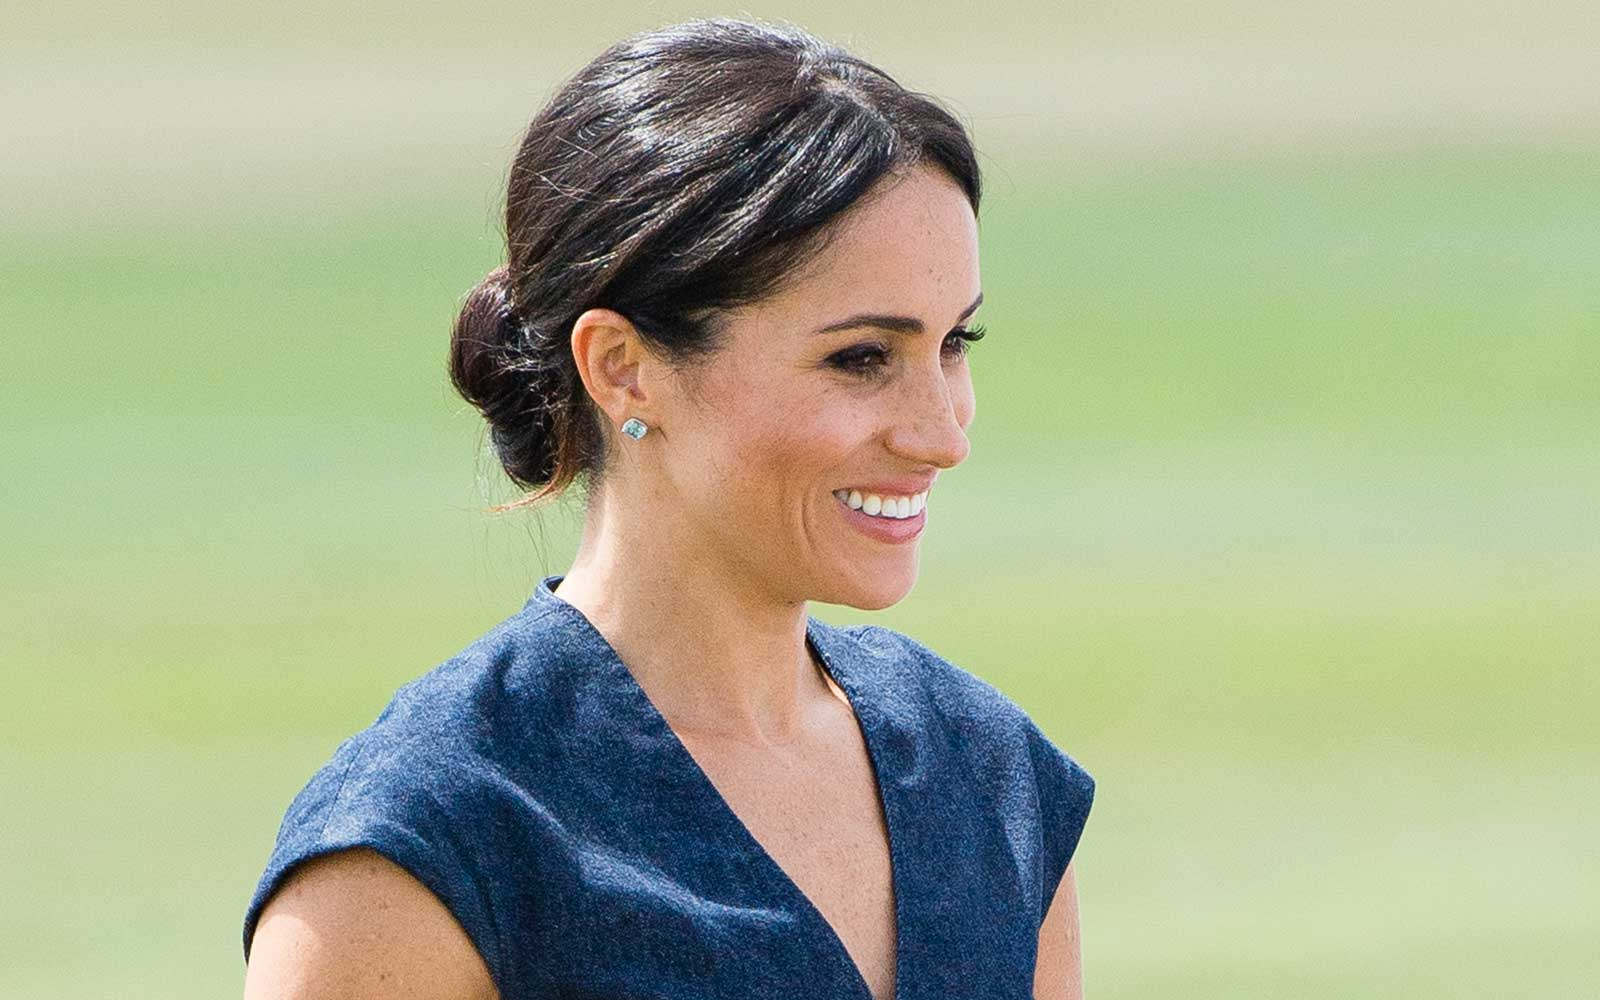 The J.Crew Clutch Both Meghan Markle and Pippa Middleton Have Is on Sale for $36